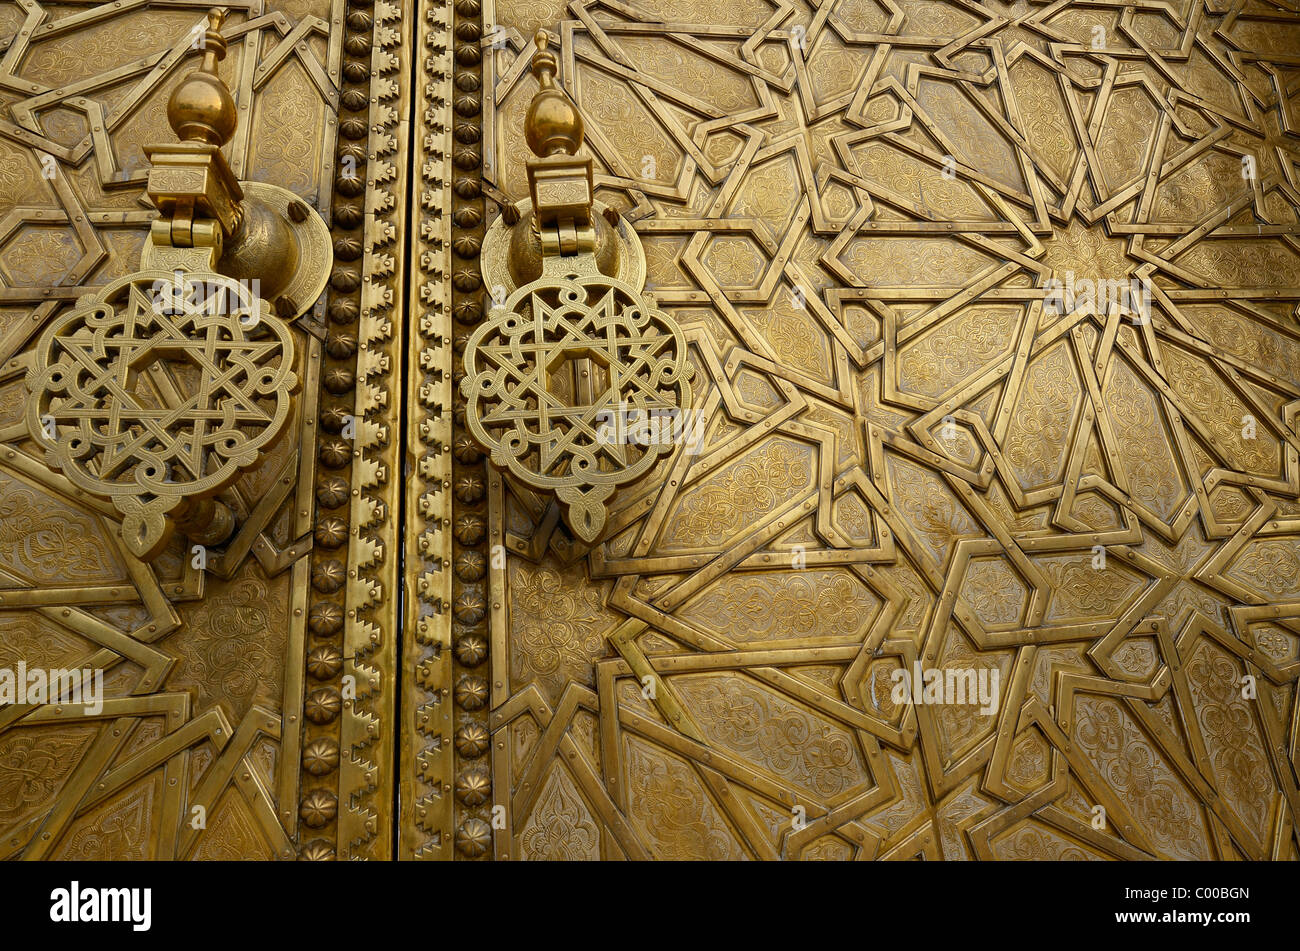 Close up of detailed engraving and knockers on the brass doors to the Dar El Makhzen palace in Fes Morocco - Stock Image